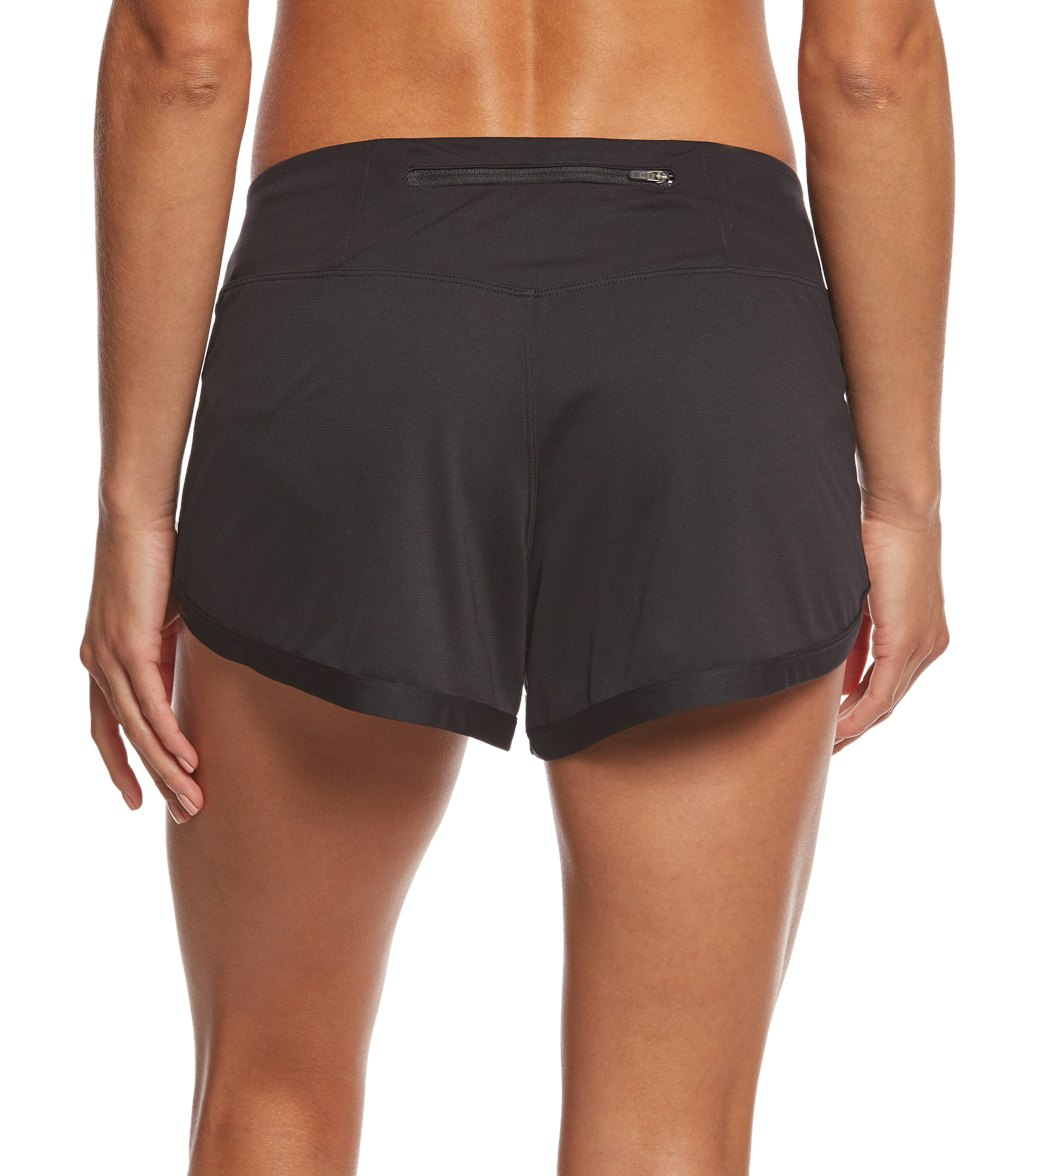 The North Face Women s Kick Up Dust Short at SwimOutlet.com - Free ... 239efb8d8